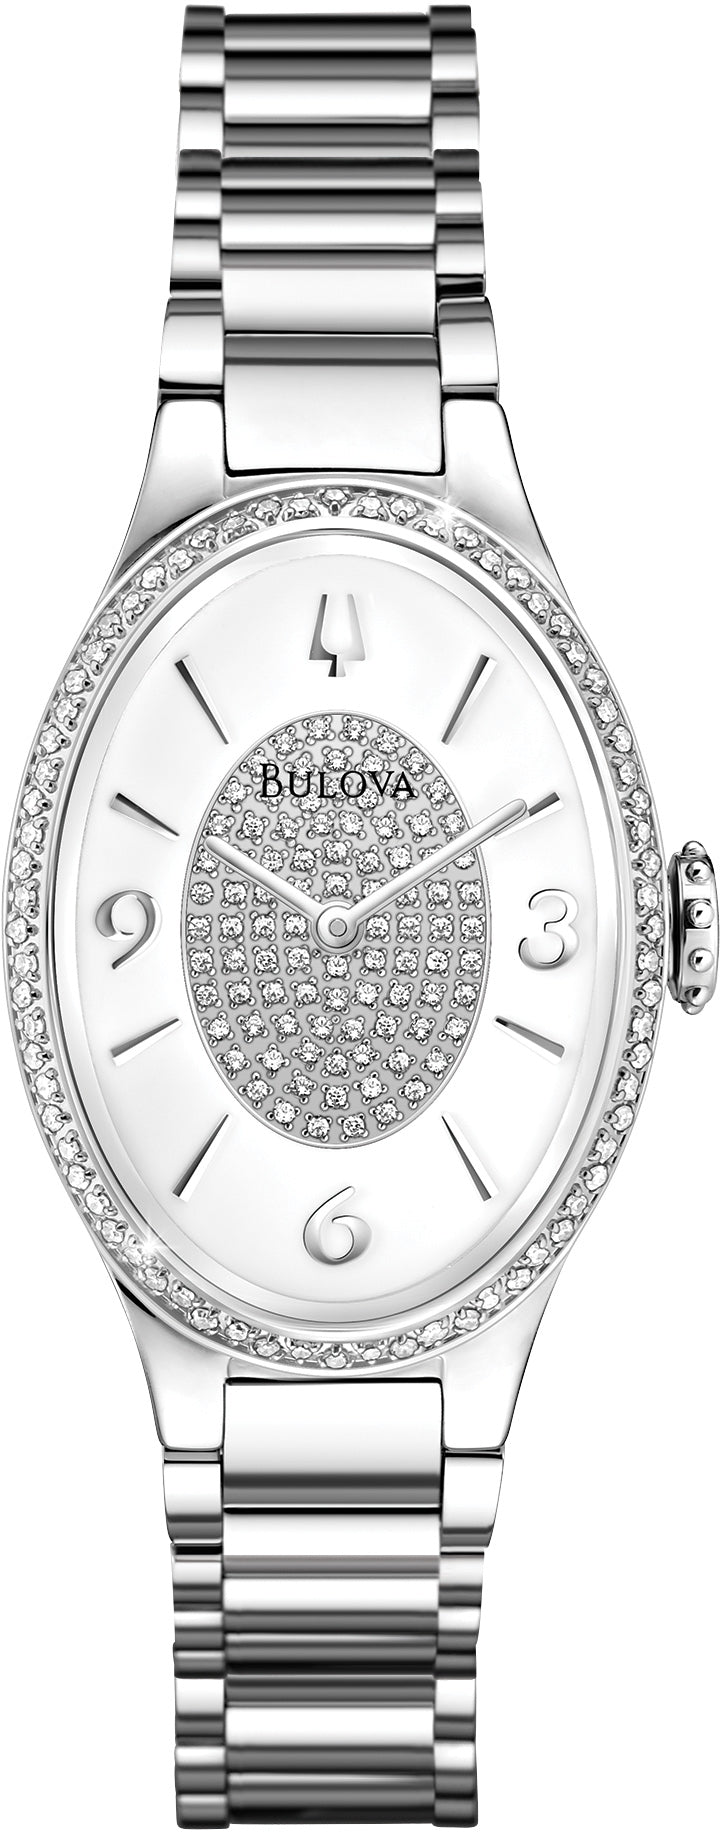 Diamond Gallery Oval Analog Diamond Dial Stainless Steel Women's Watch 96R193